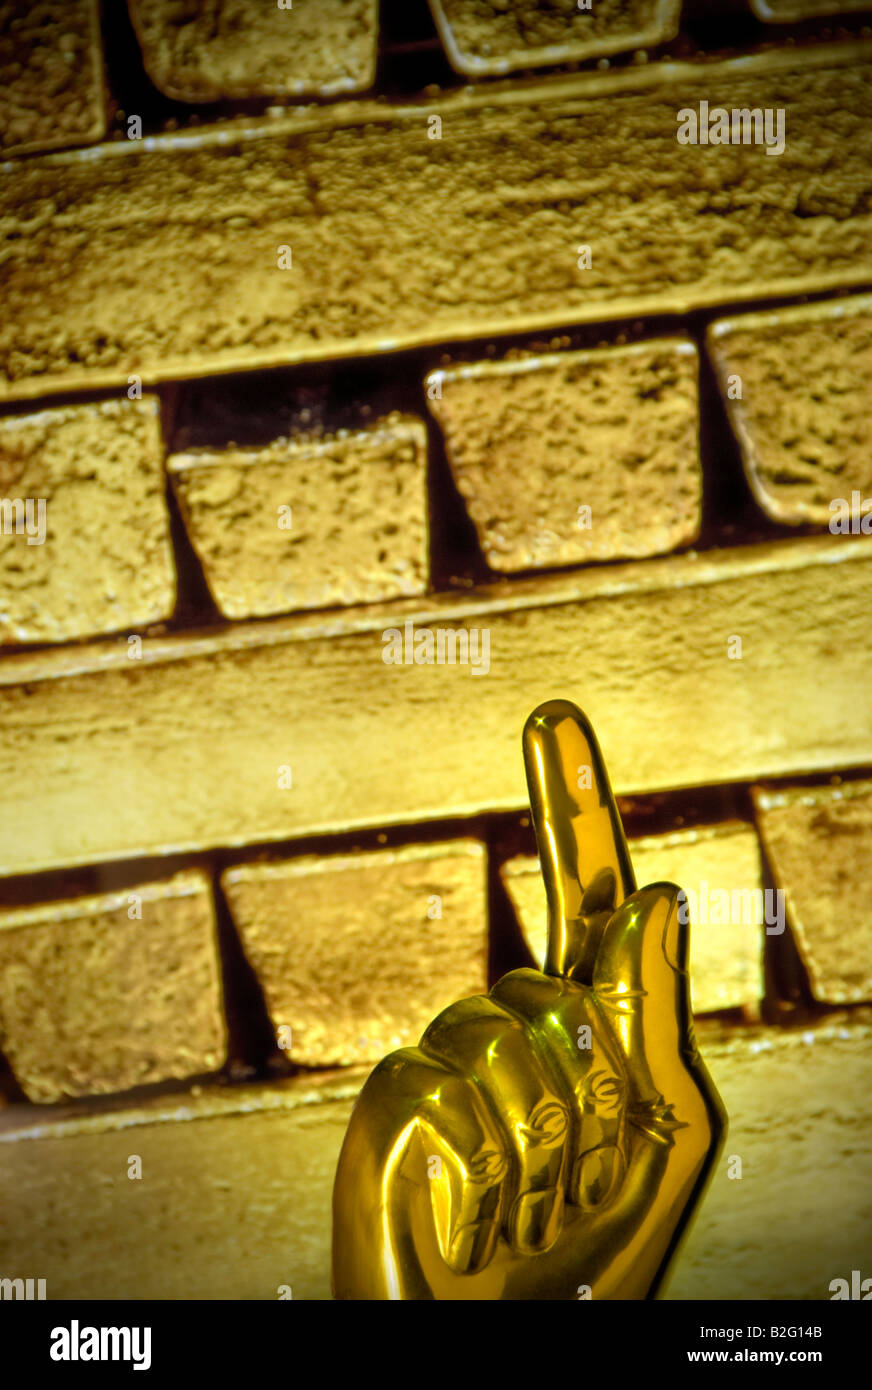 Concept image of increasing global price of gold with 'Gold Finger' pointing up with solid gold bullion - Stock Image